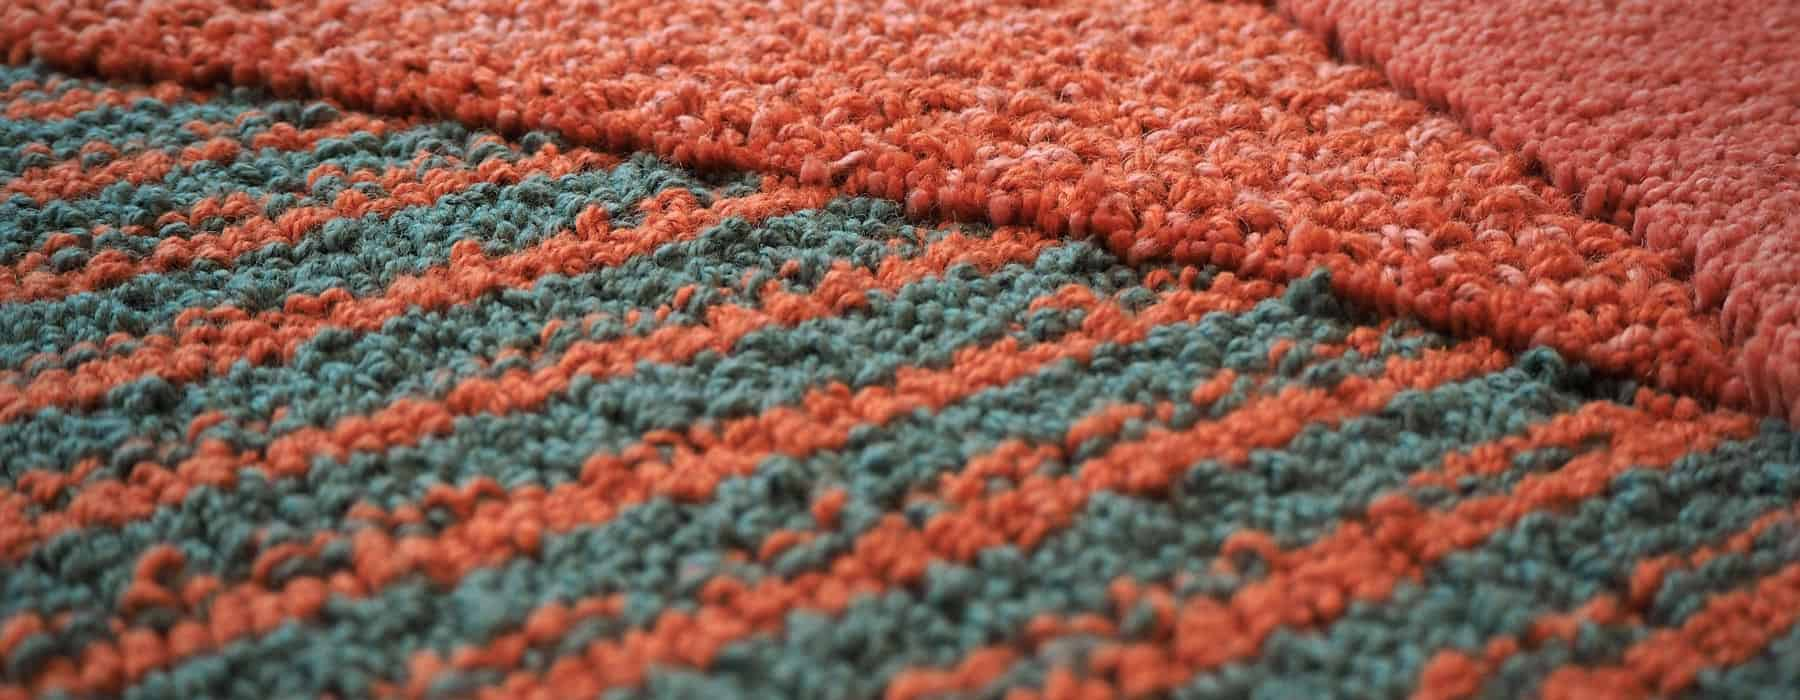 Wool Rug Cleaning Raleigh Nc Petty Johns Carpet Cleaning